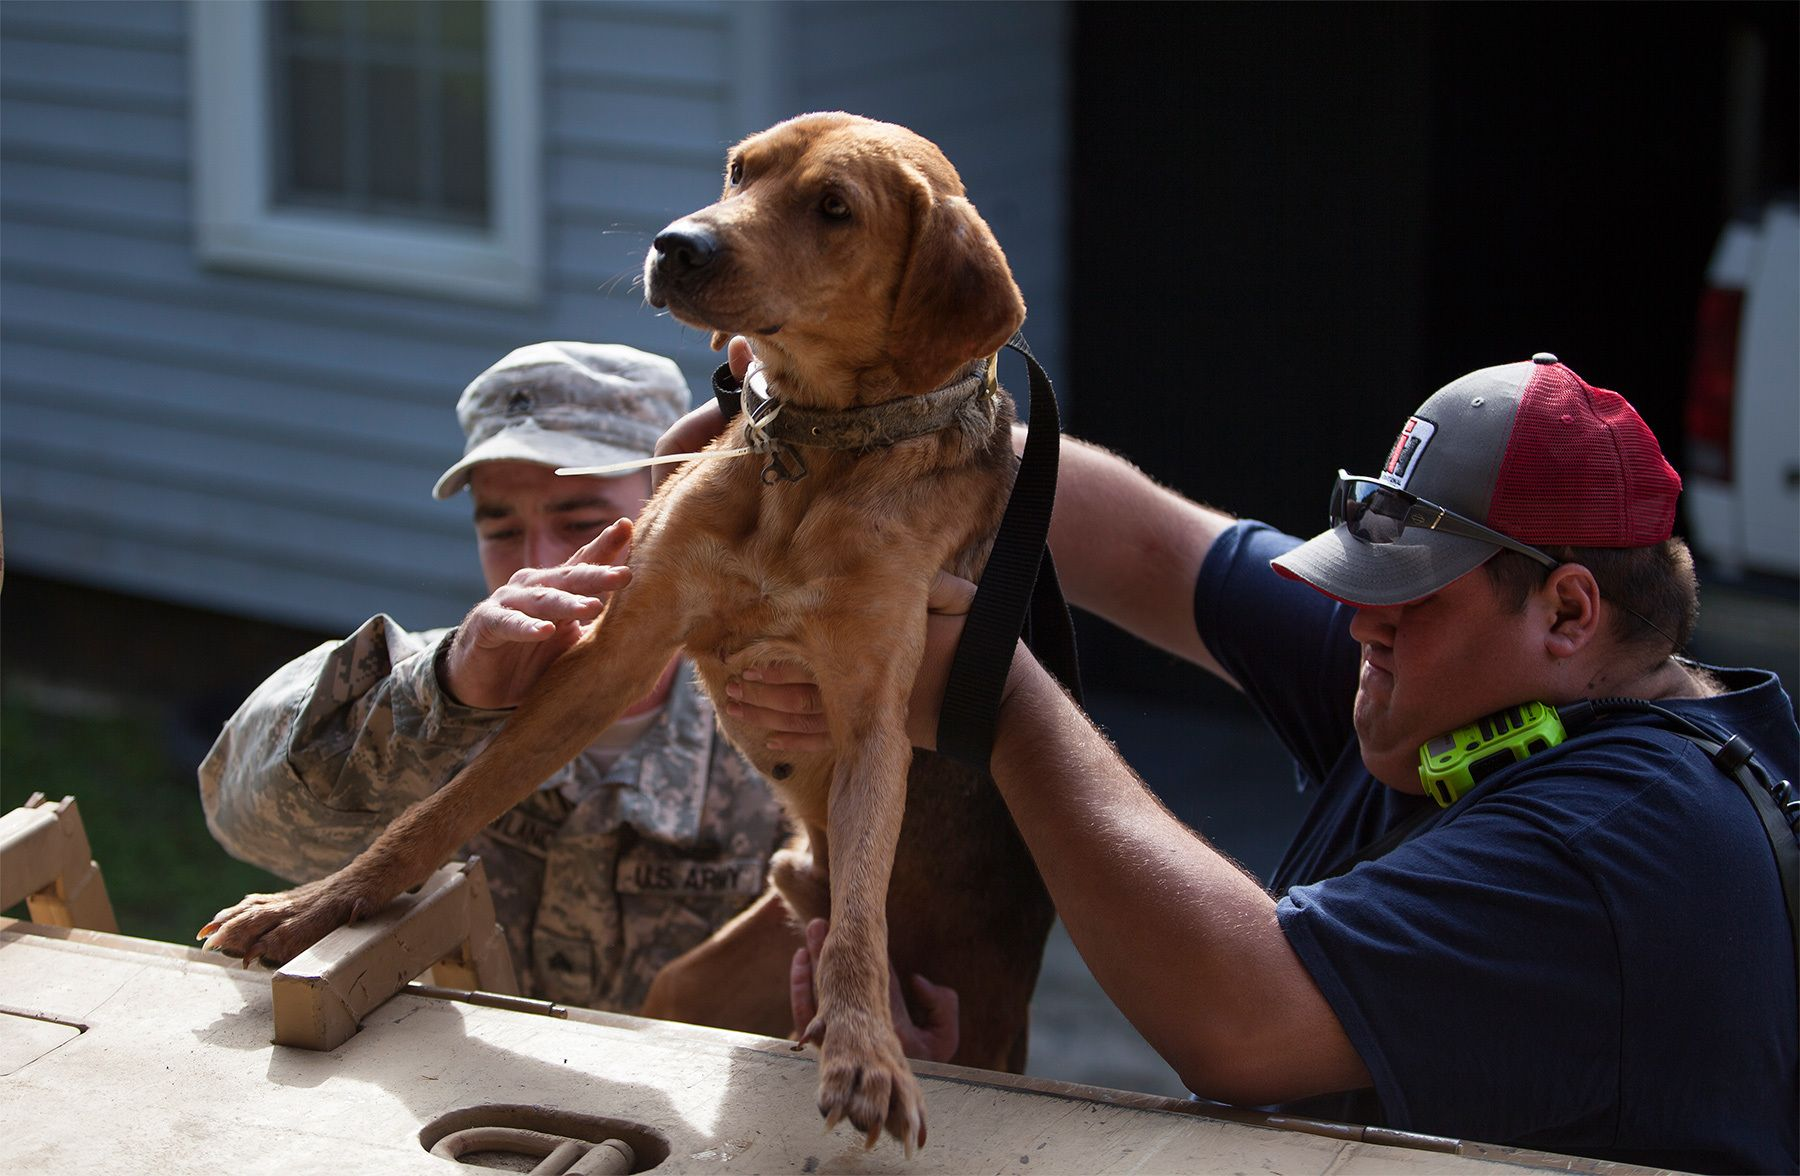 Sgt. William Roland (L) of the SC National Guard and Mason Caudle of the Georgetown Fire Department, rescue a lost dog in Georgetown, South Carolina October 9, 2015. Concerns about additional inundation in four coastal counties and more rain had officials on guard Friday, nine days after a state of emergency was declared because of historic rains that washed out roads, swamped hundreds of homes and killed 17 people in the state. Emergency management officials in several areas were encouraging residents to leave their homes as a precaution as floodwaters flow south into already-swollen rivers and tributaries toward the Atlantic Ocean.  REUTERS/Randall Hill